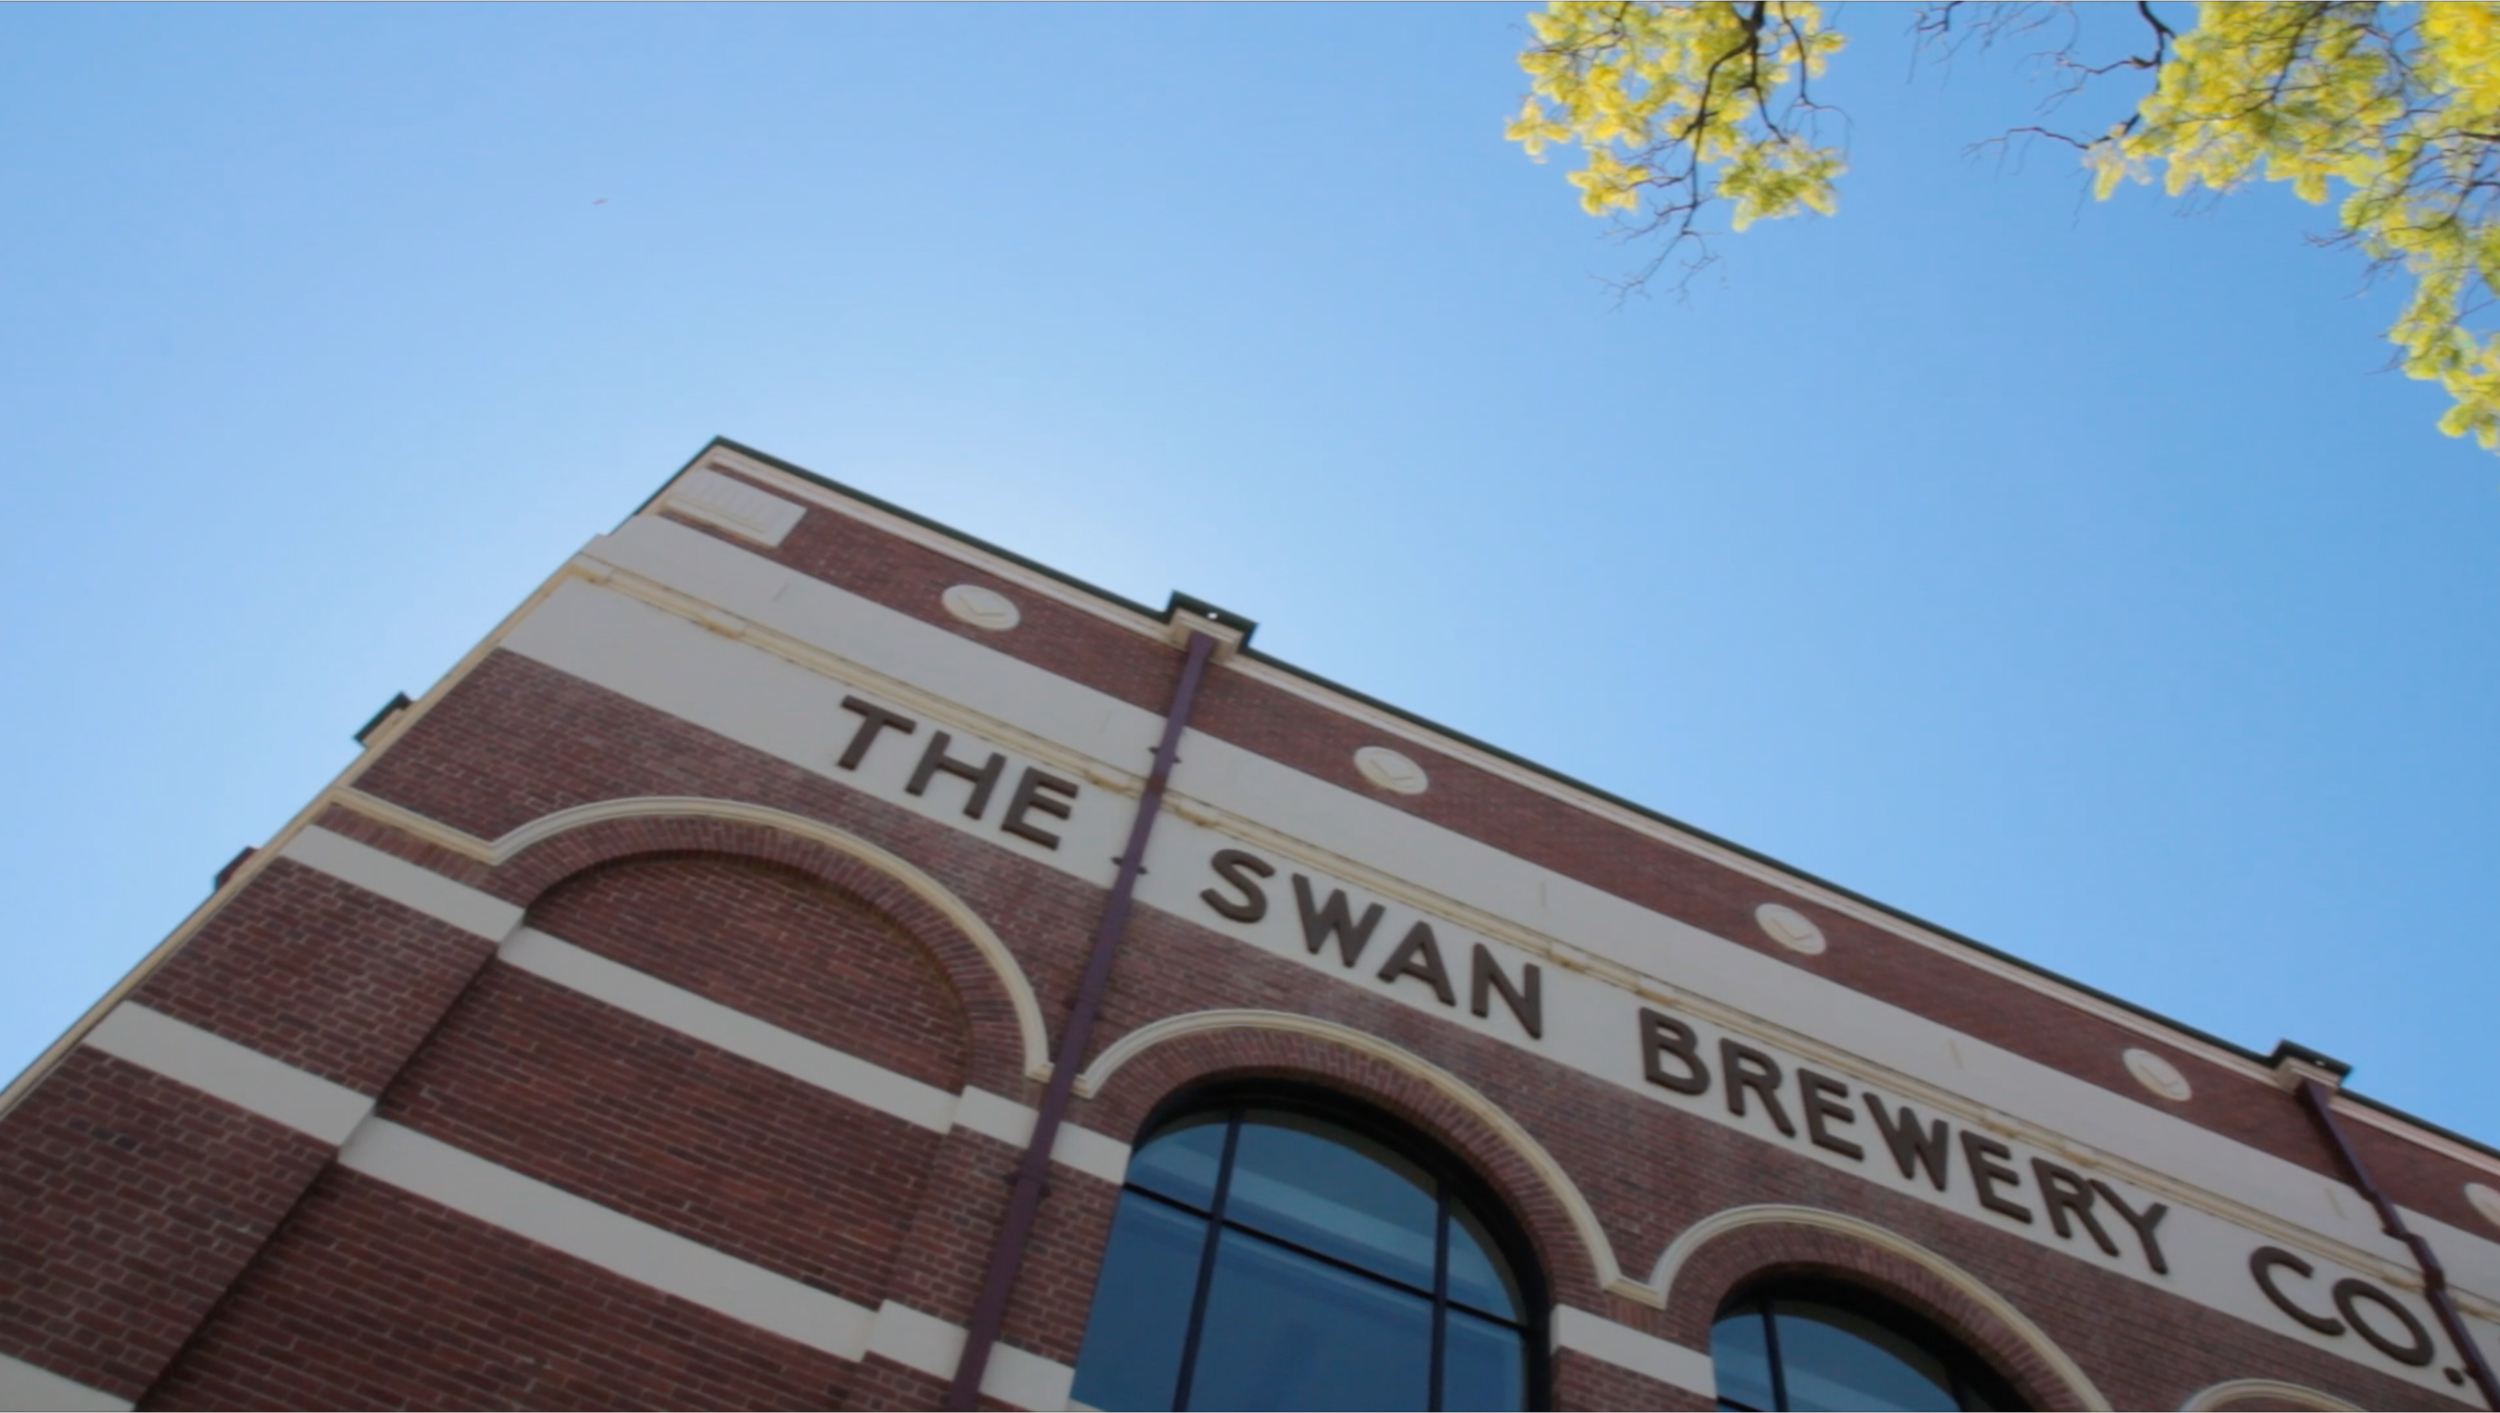 Nov 2010 - Opens new studio at 'The Old Swan Brewery' in Perth.